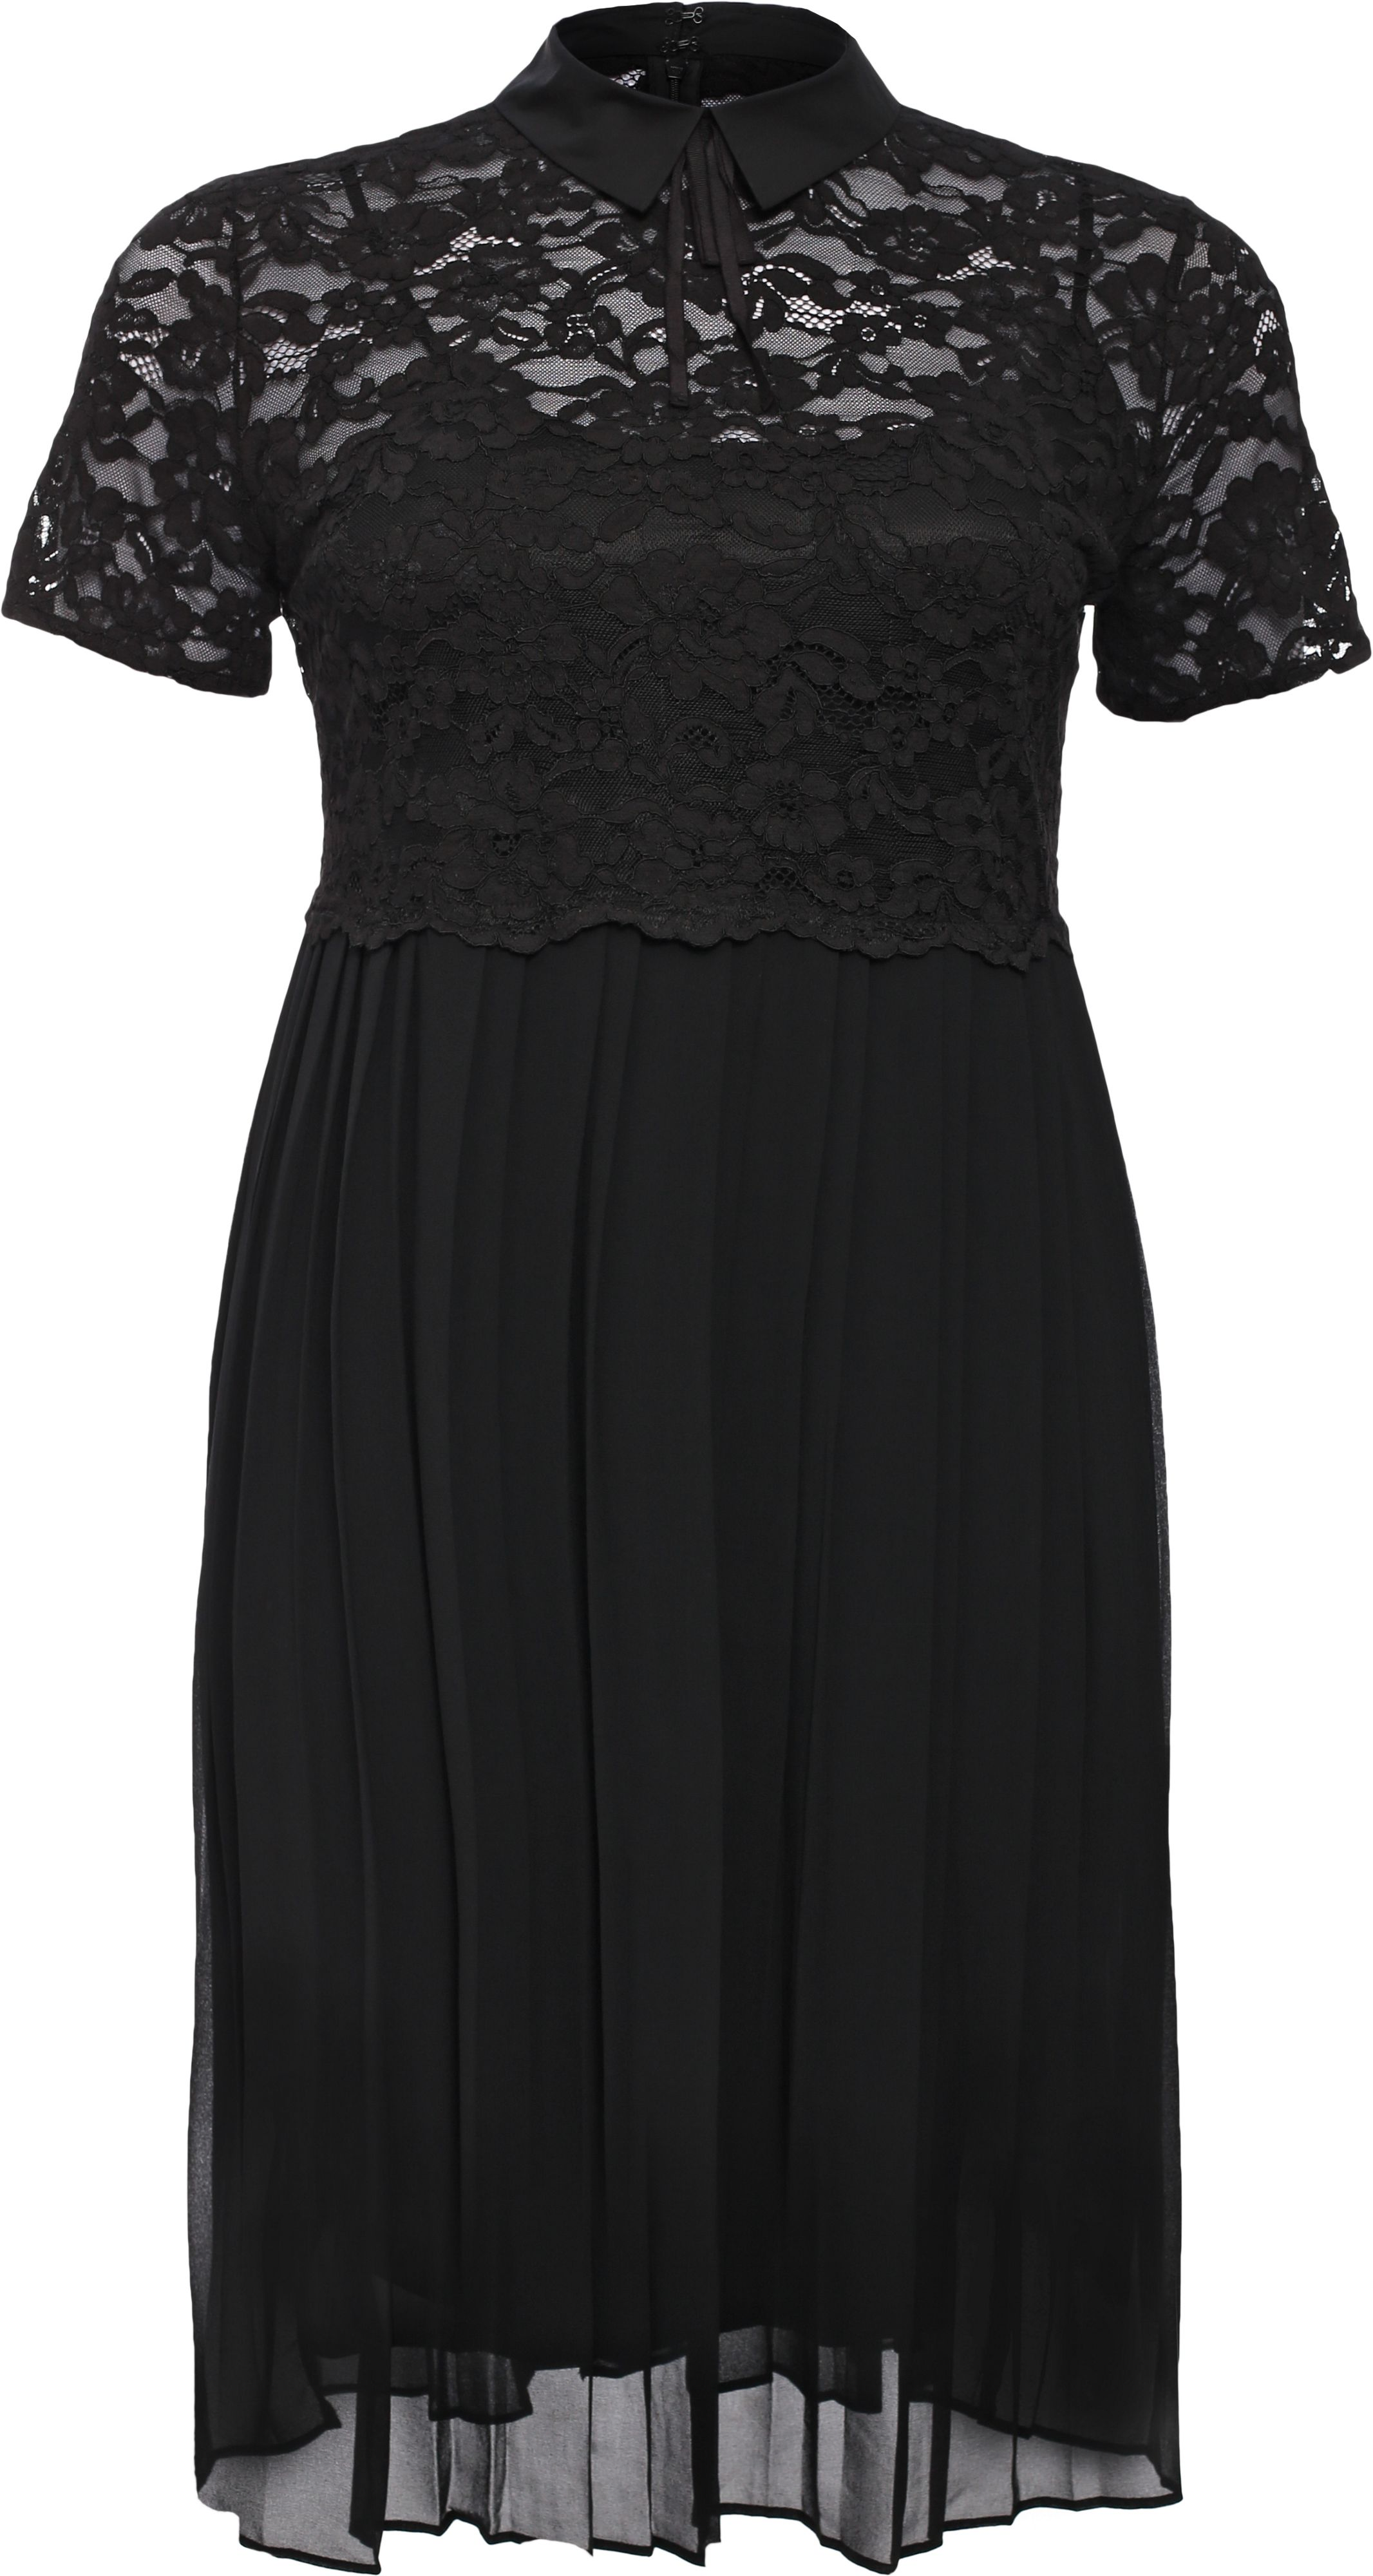 Lost Ink Curve Skater Dress With Lace Top & Pleated Skirt, Black